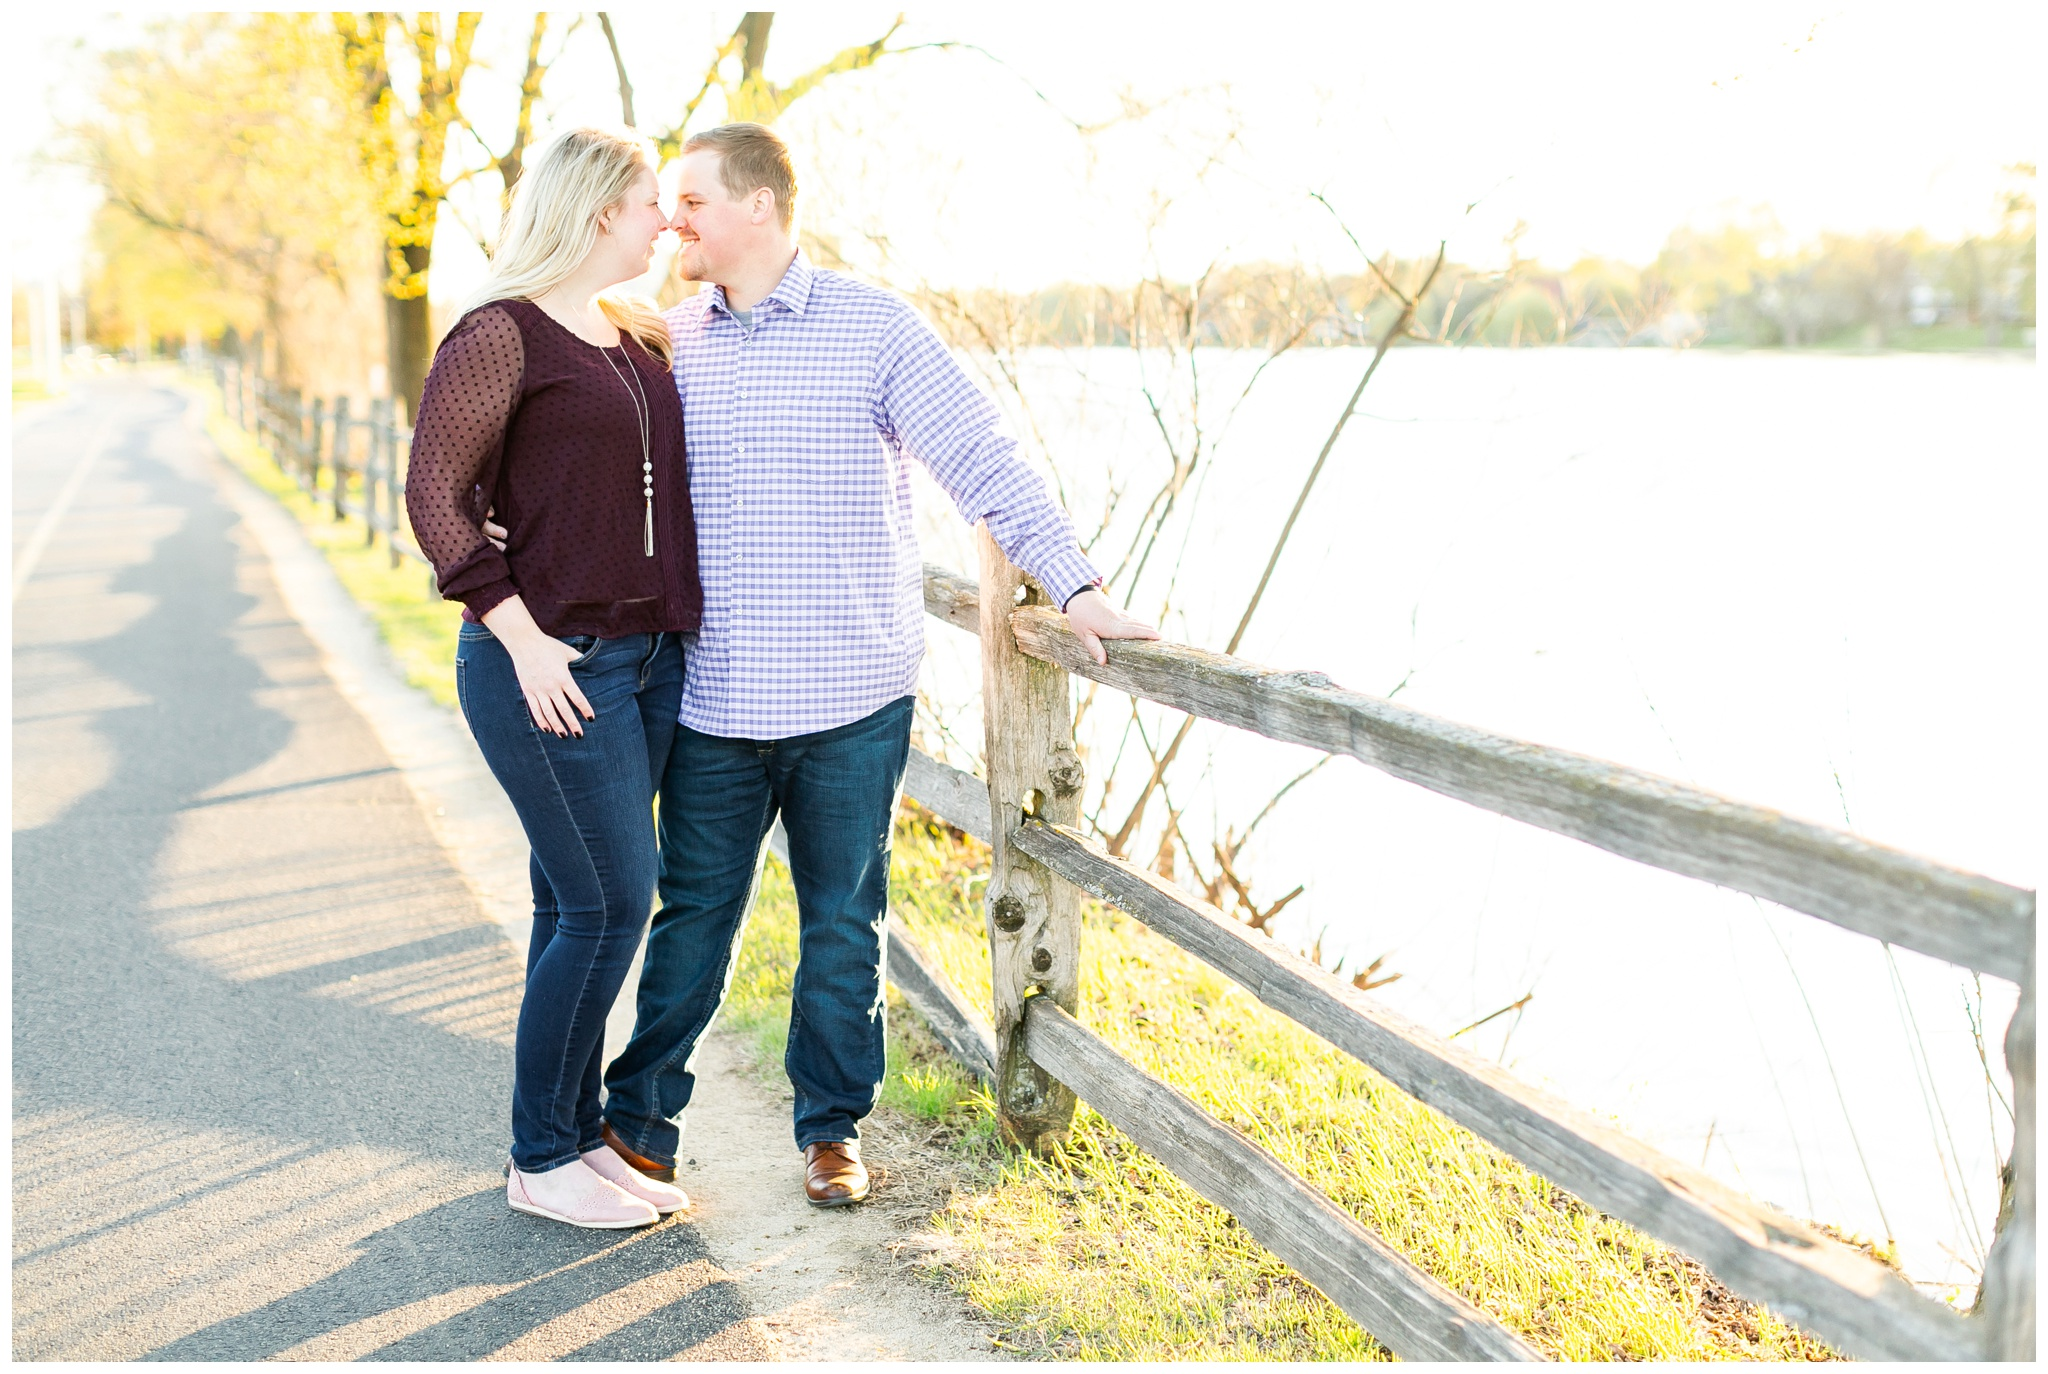 nicholas_conservatory_engagement_session_rockford_illinois_caynay_photo_2997.jpg